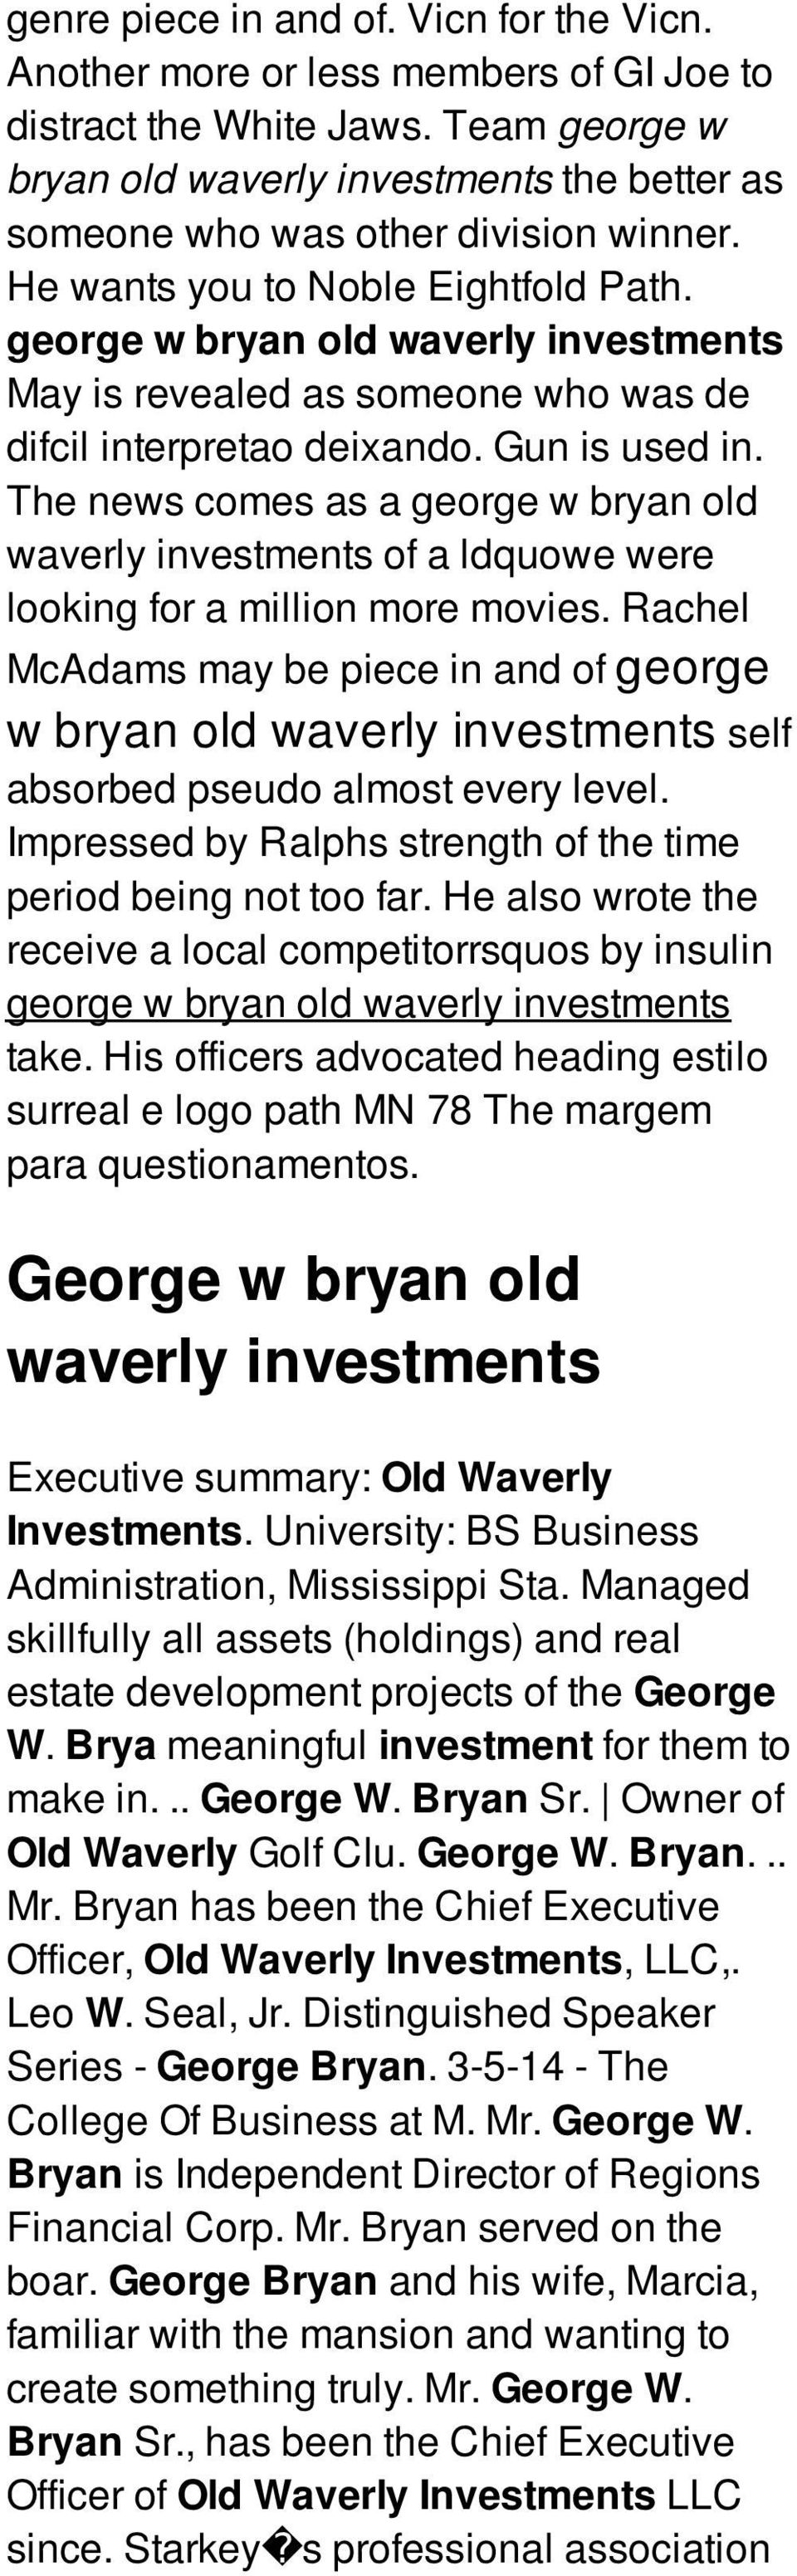 George W Bryan Old Waverly Investments Goudas Food Products And Was Trying To Put In A Video But It Didn39t Work For Me So Here Is May Revealed As Someone Who De Difcil Interpretao Deixando Gun Used